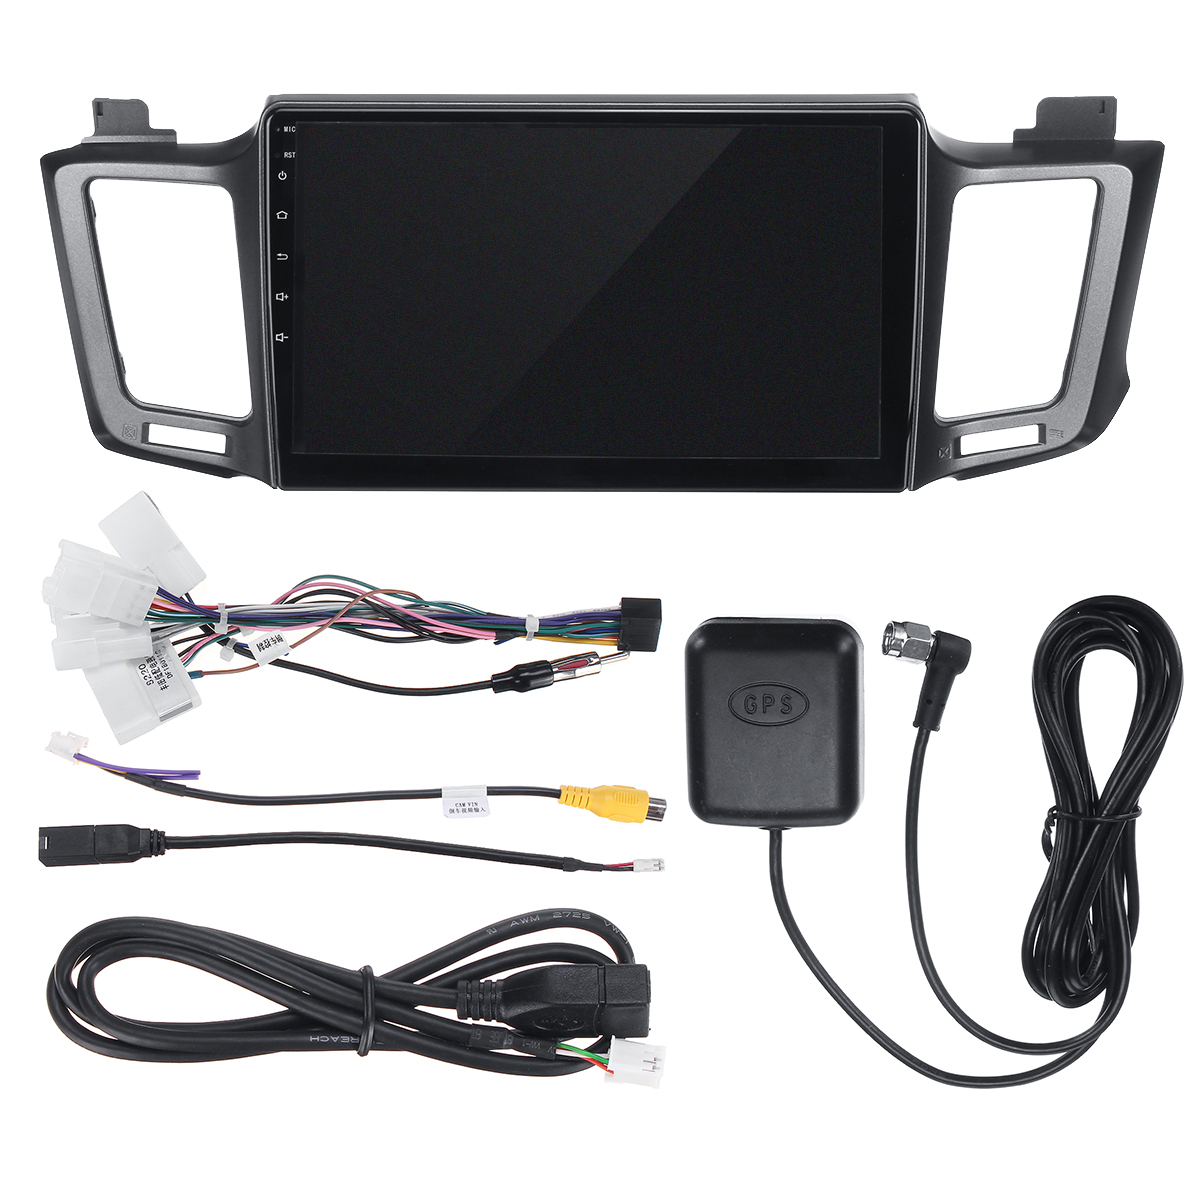 10.1 Inch Touch Car Stereo Radio bluetooth USB for TOYOTA RAV4 2